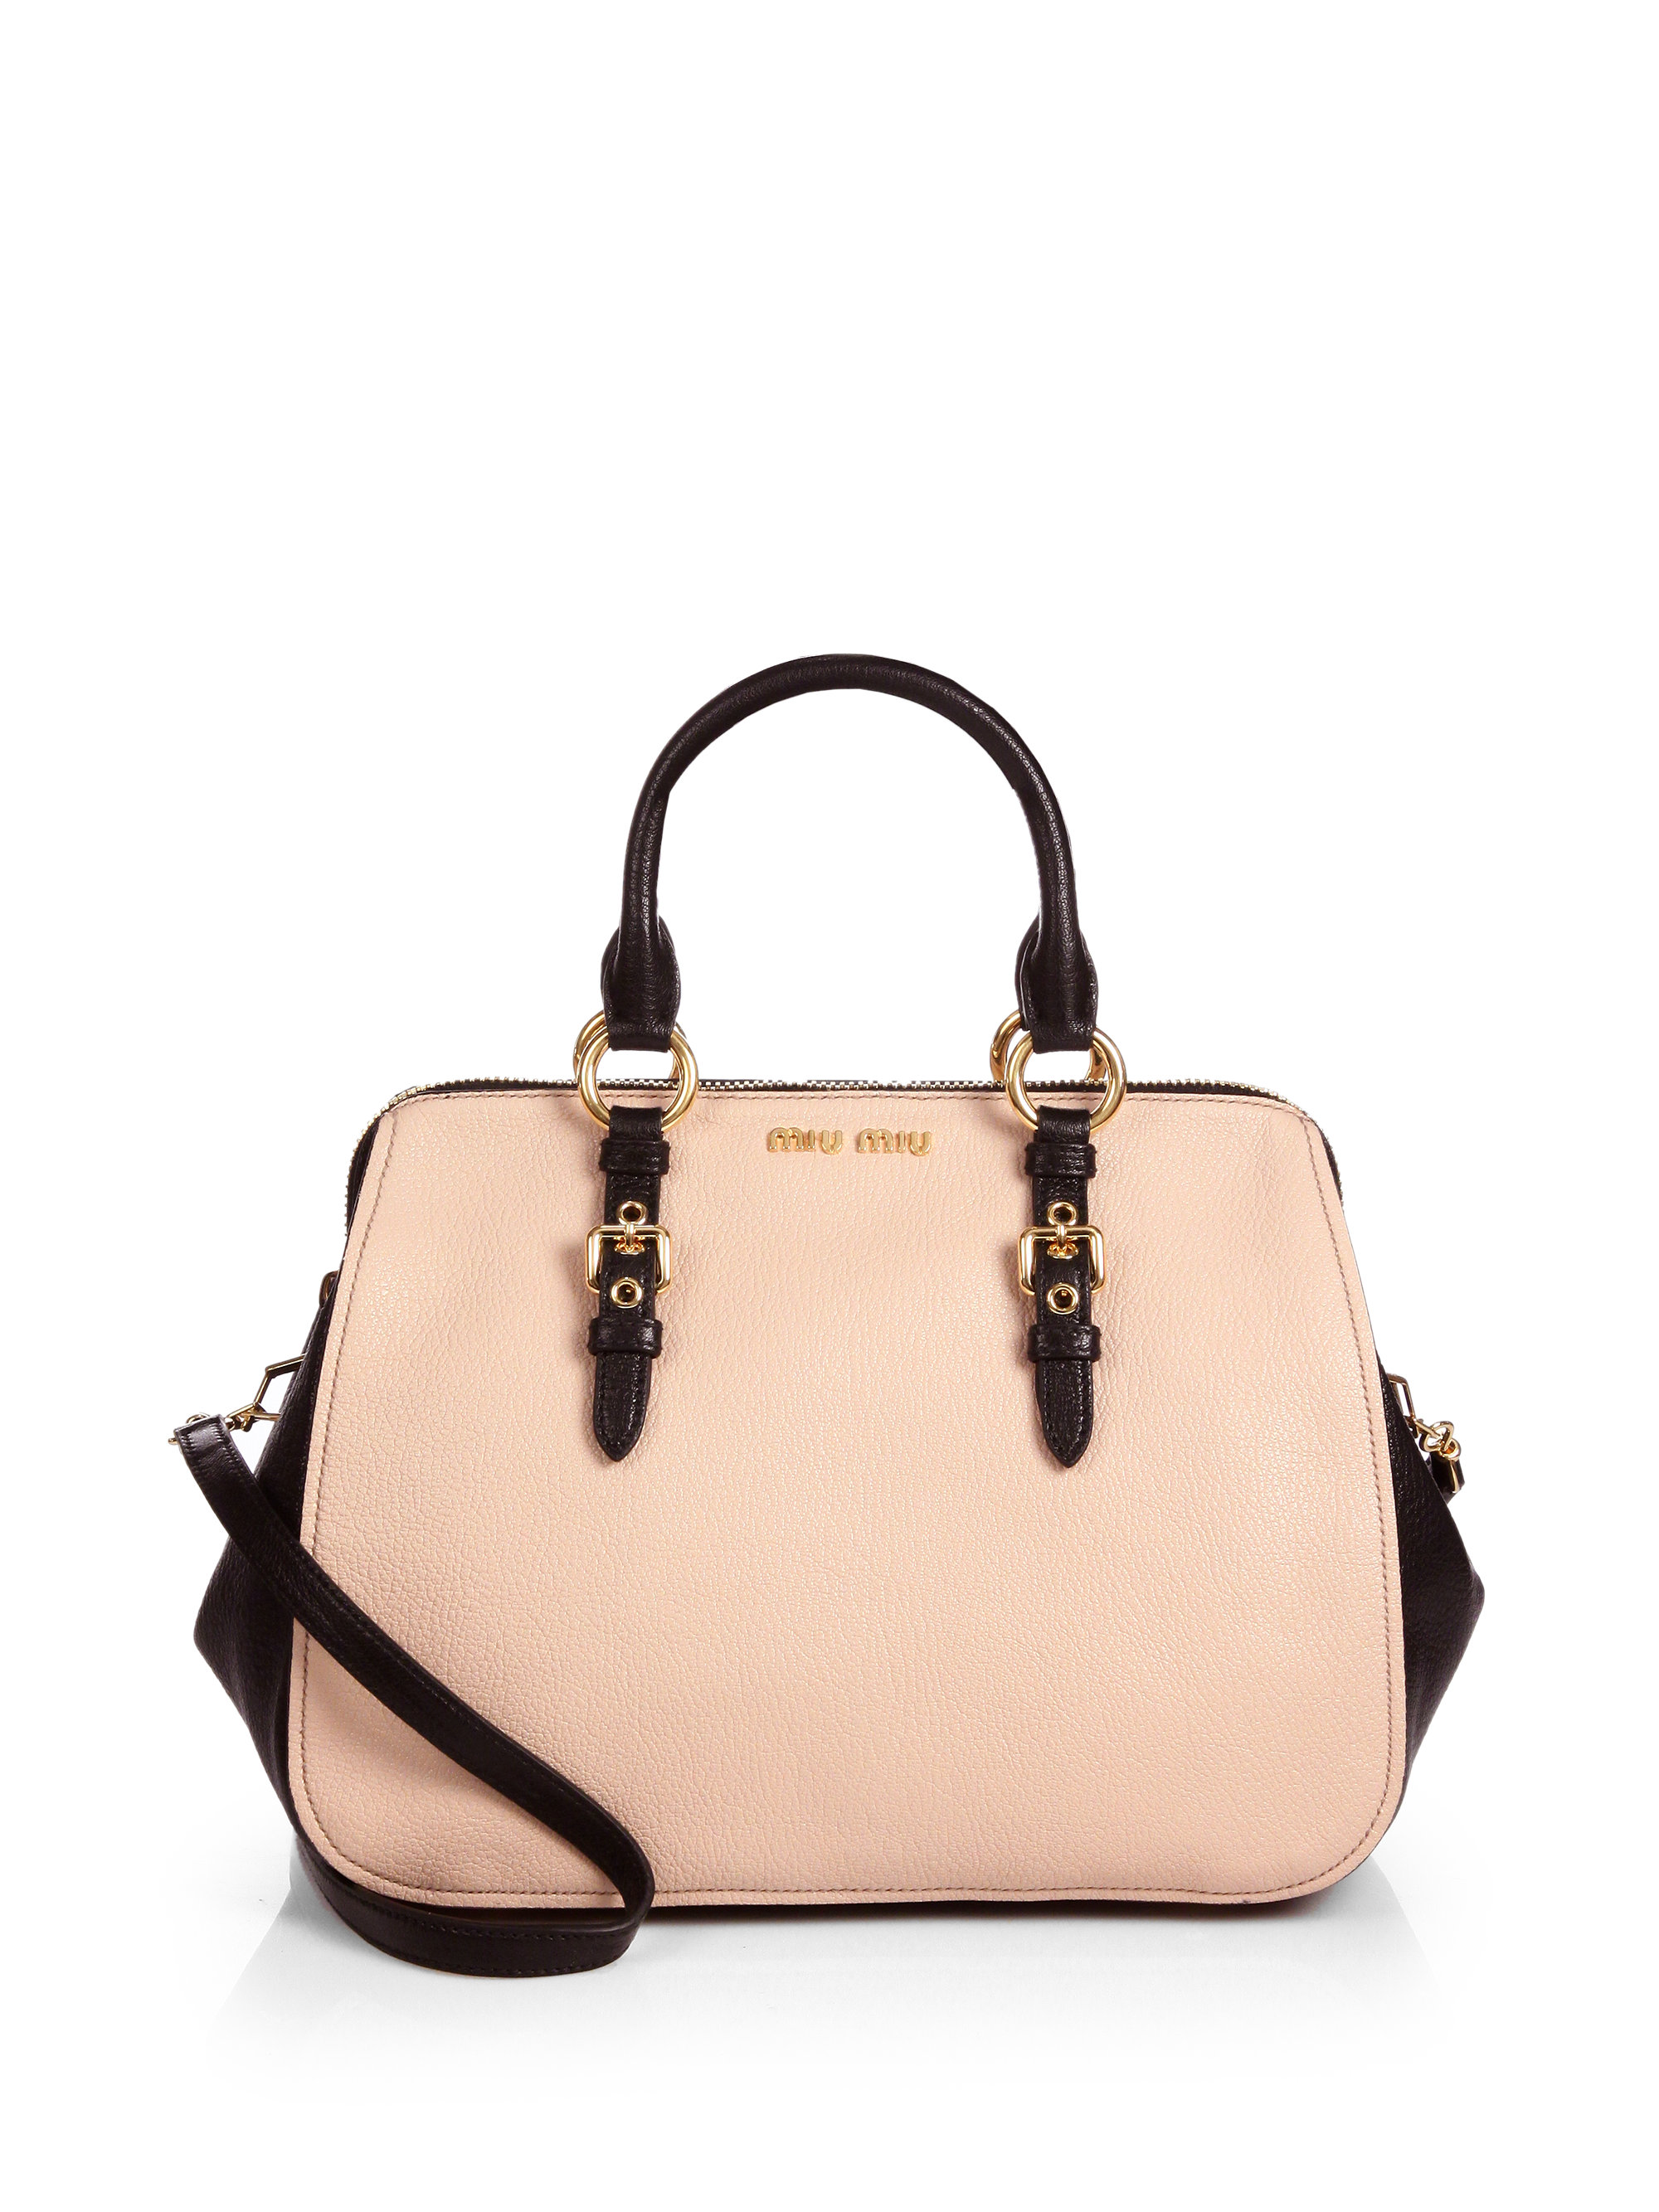 942bb1ae7ff Gallery. Previously sold at  Saks Fifth Avenue · Women s Bowling Bags  Women s Miu Miu Shoulder Bag ...